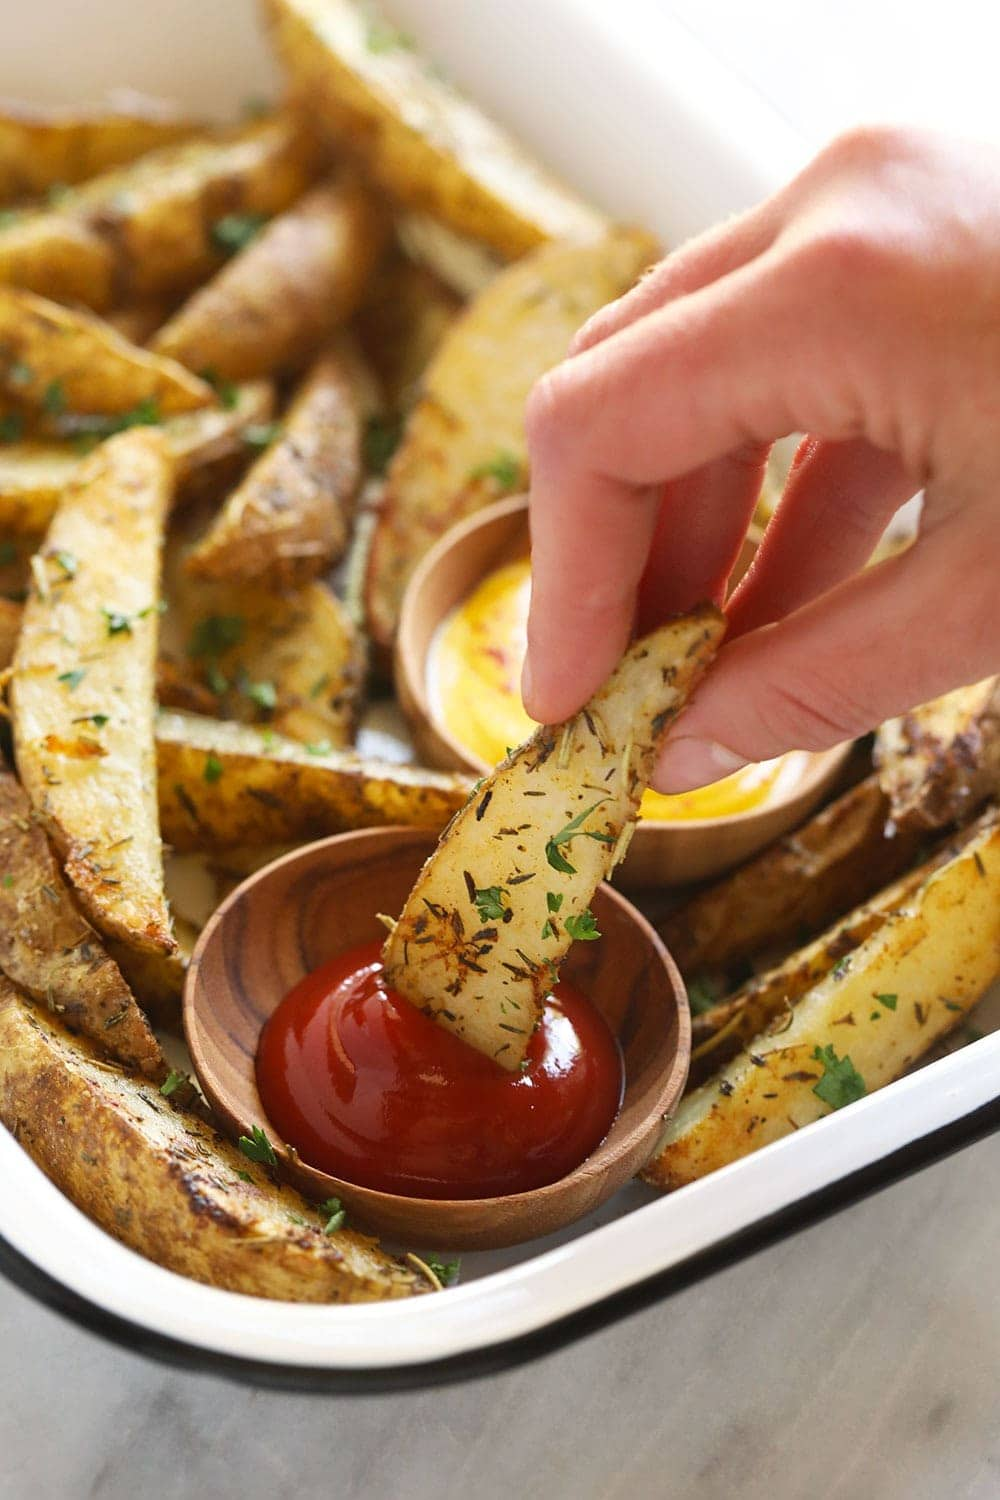 Dipping a potato wedge into ketchup.